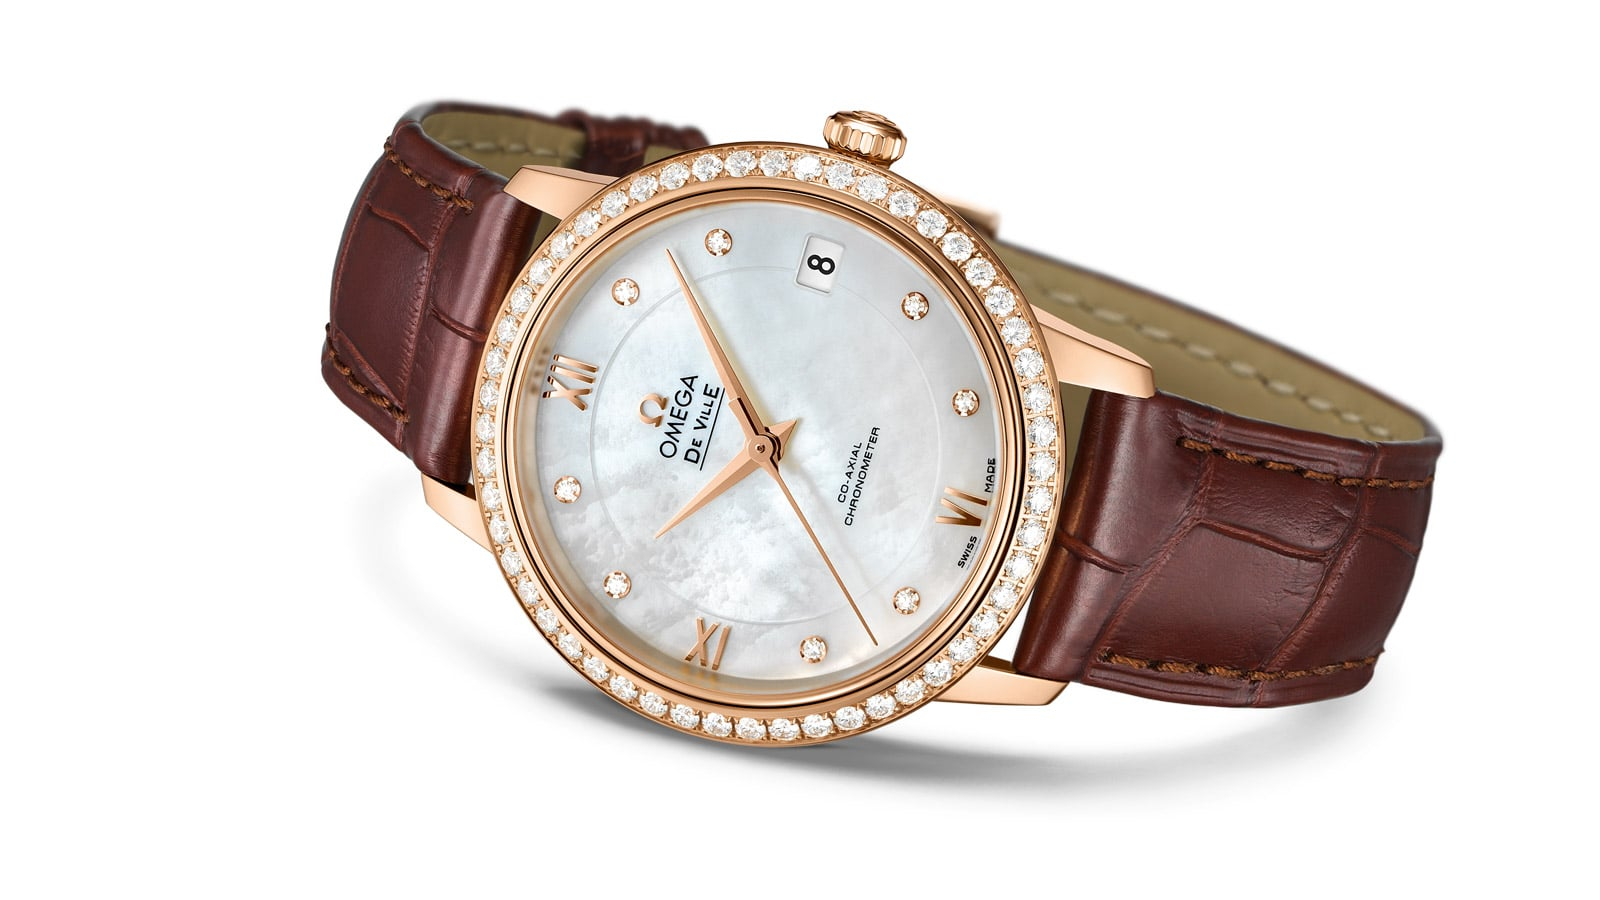 54a8367c7da75 Prestige watch for ladies with a gold diamond encrusted case and leather  strap